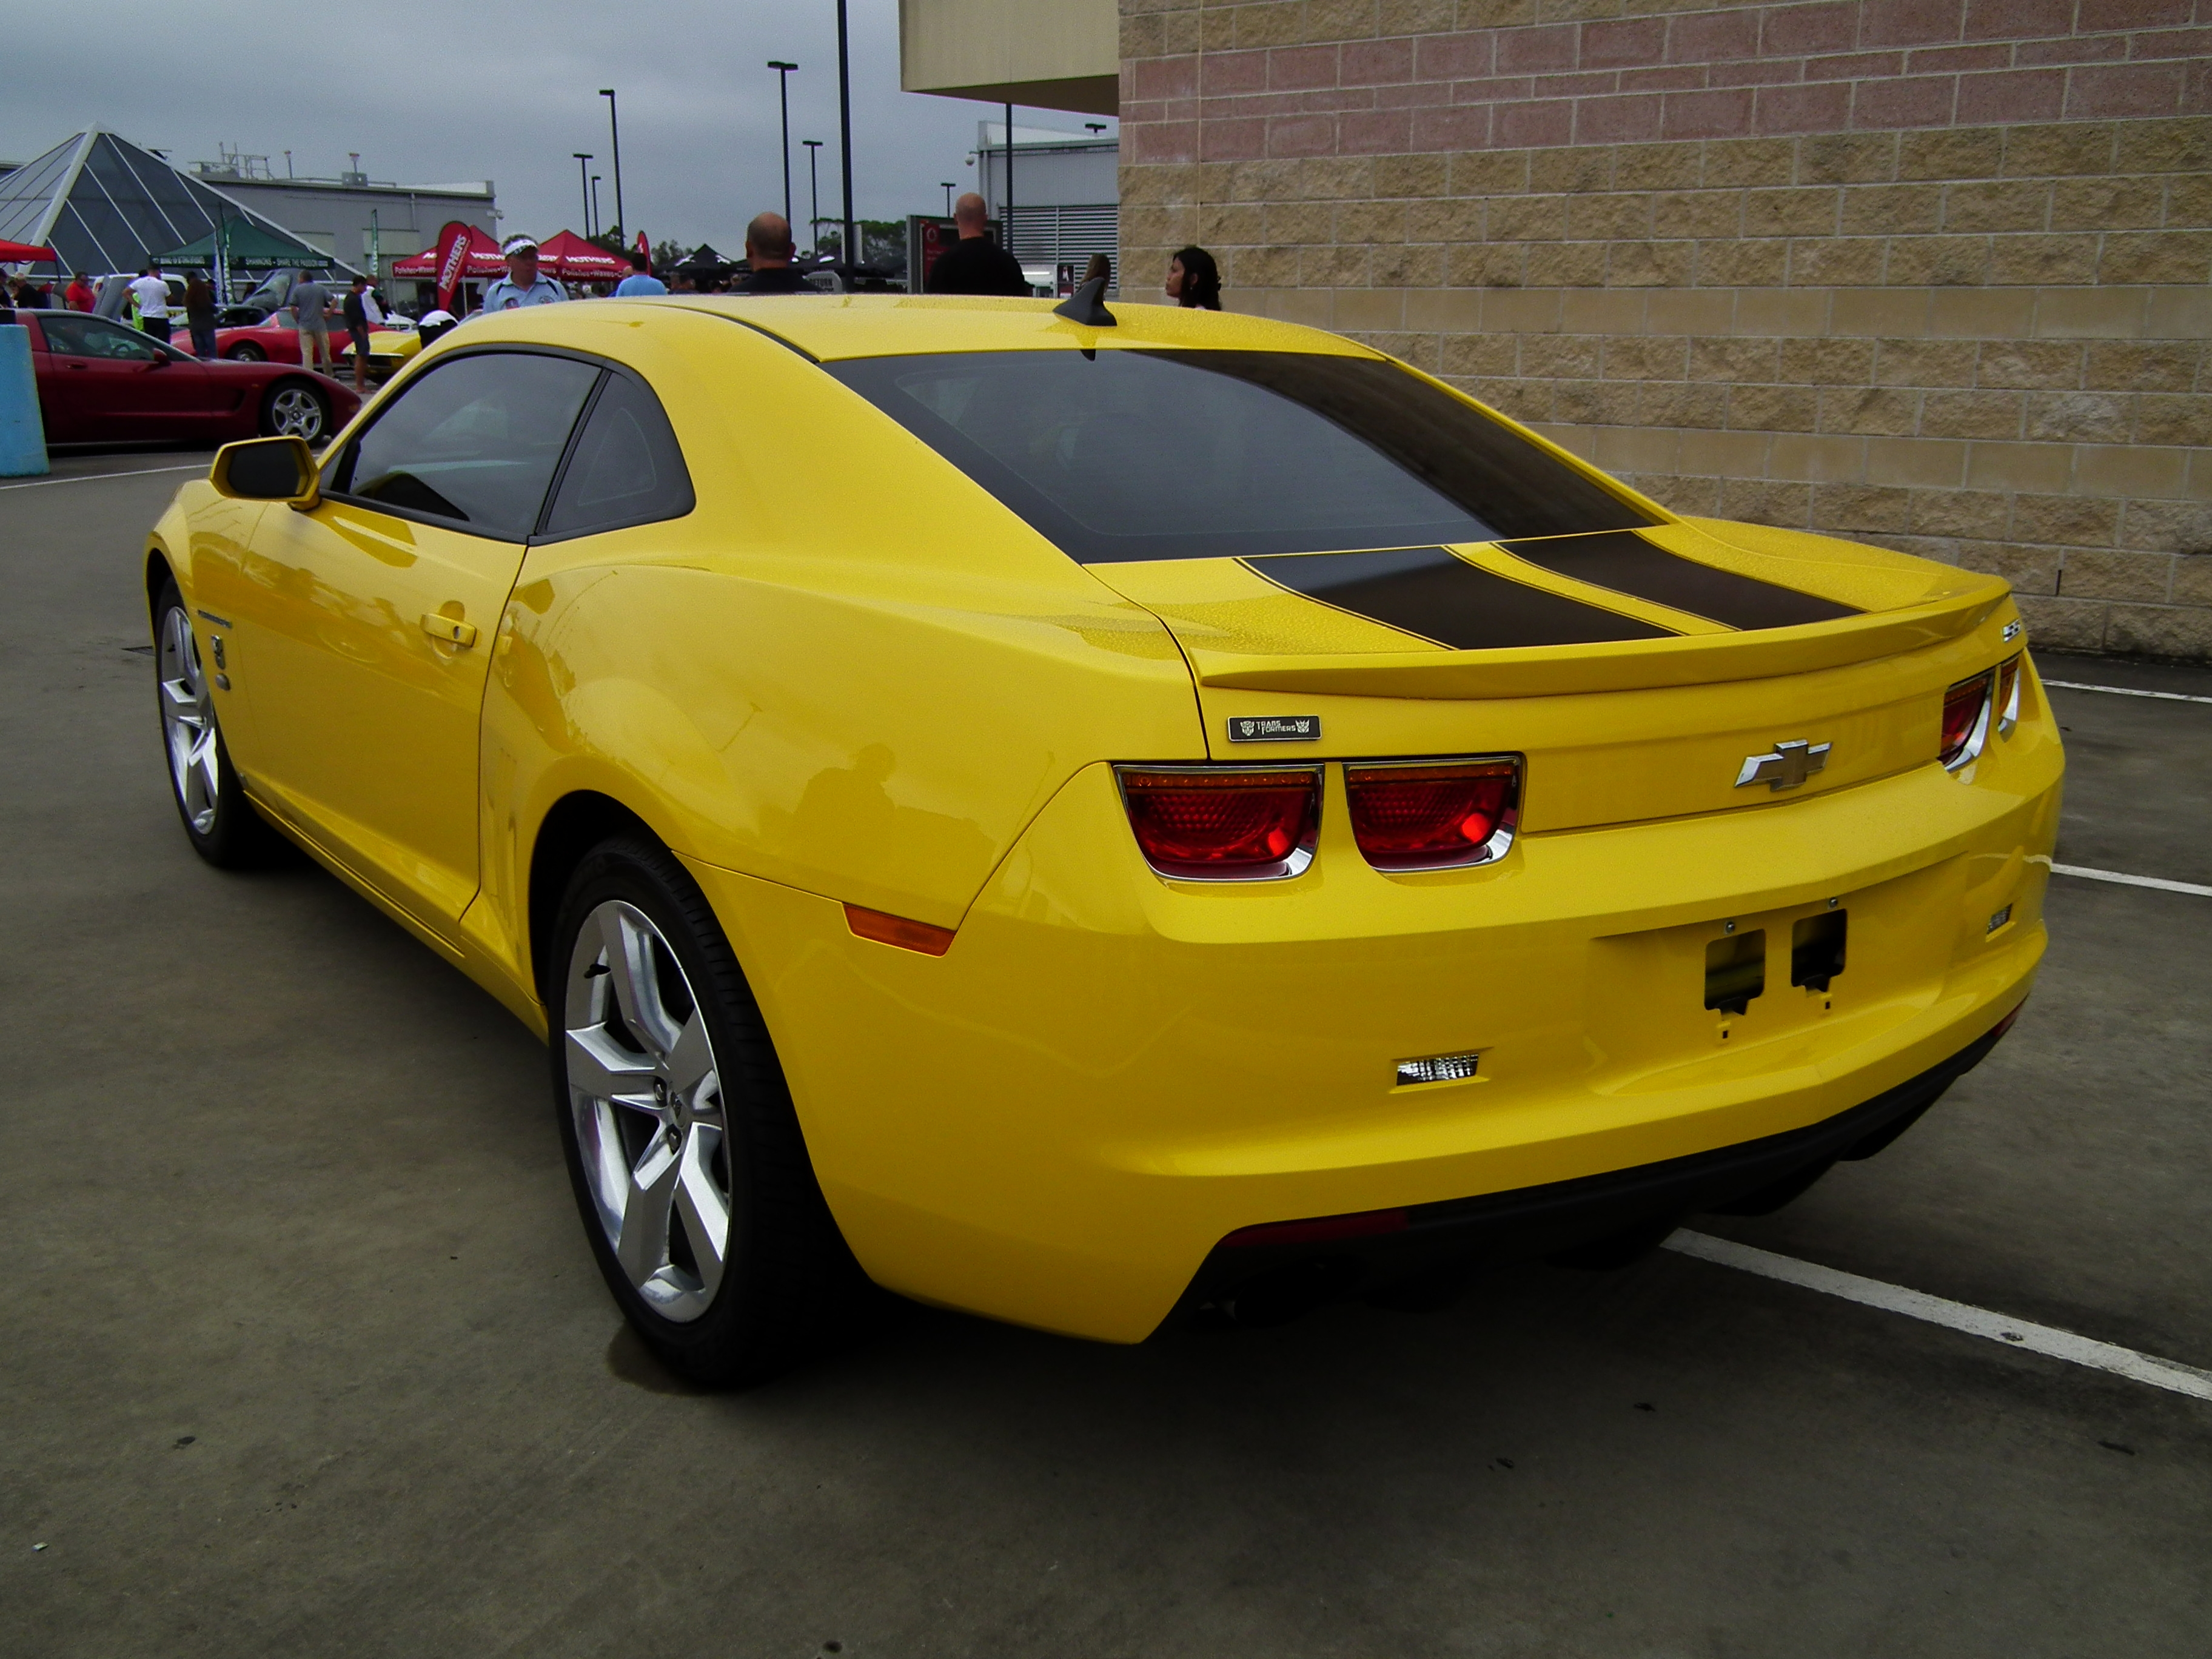 Elegant File:2010 Chevrolet Camaro SS Transformers Edition Coupe (8453103296)